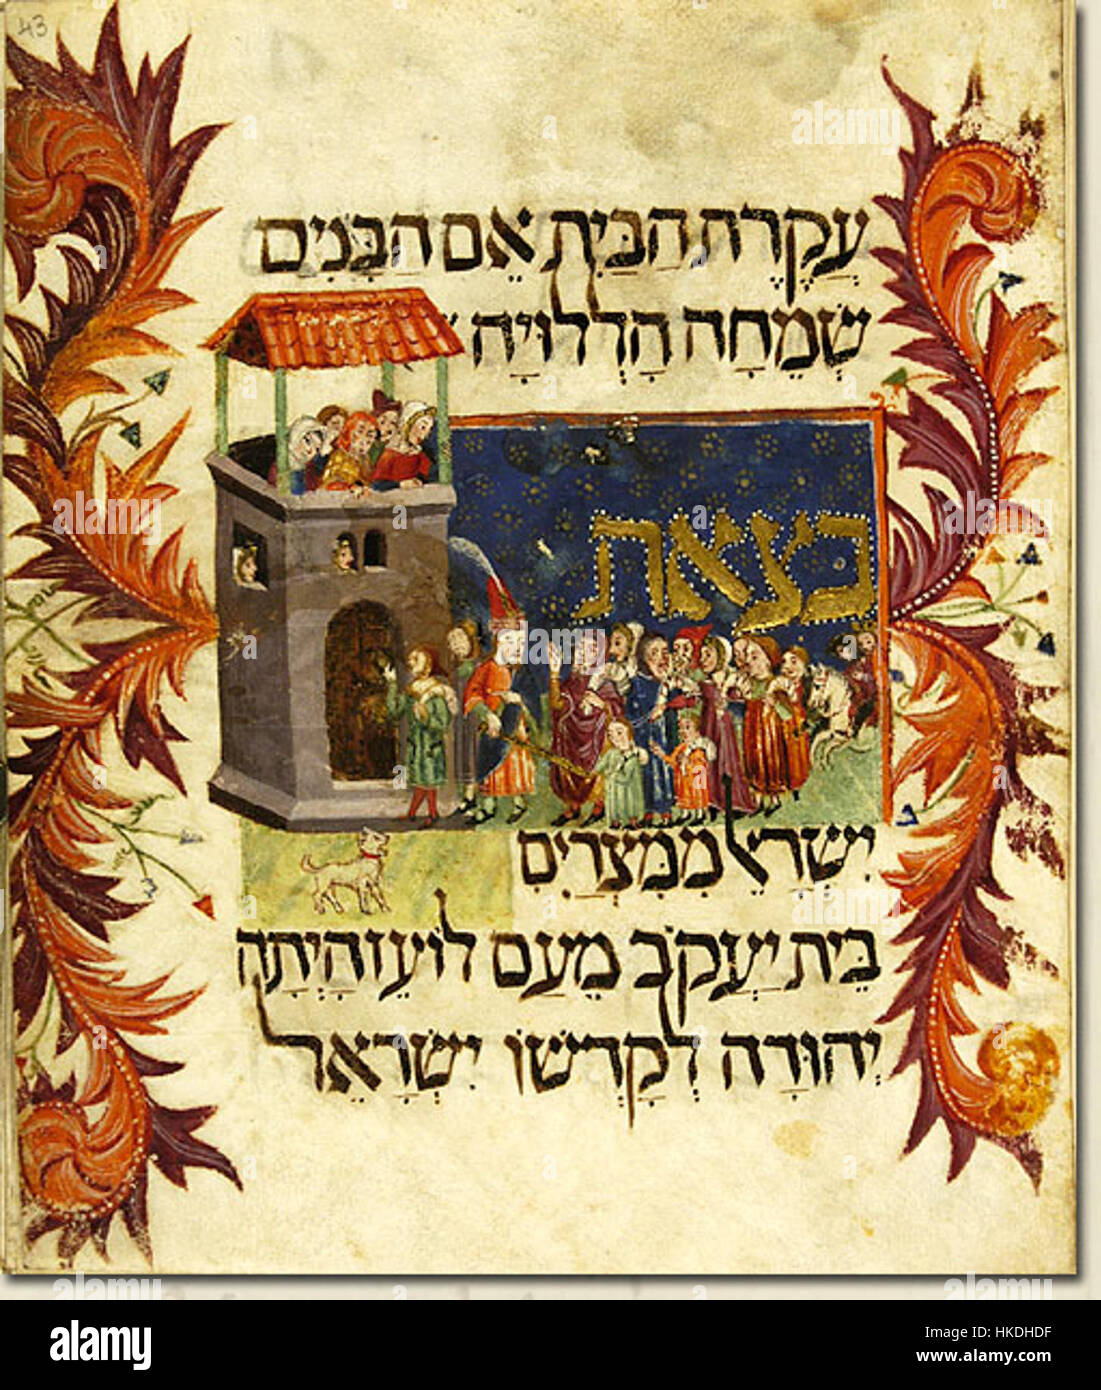 Illustration haggadah exodus - Stock Image